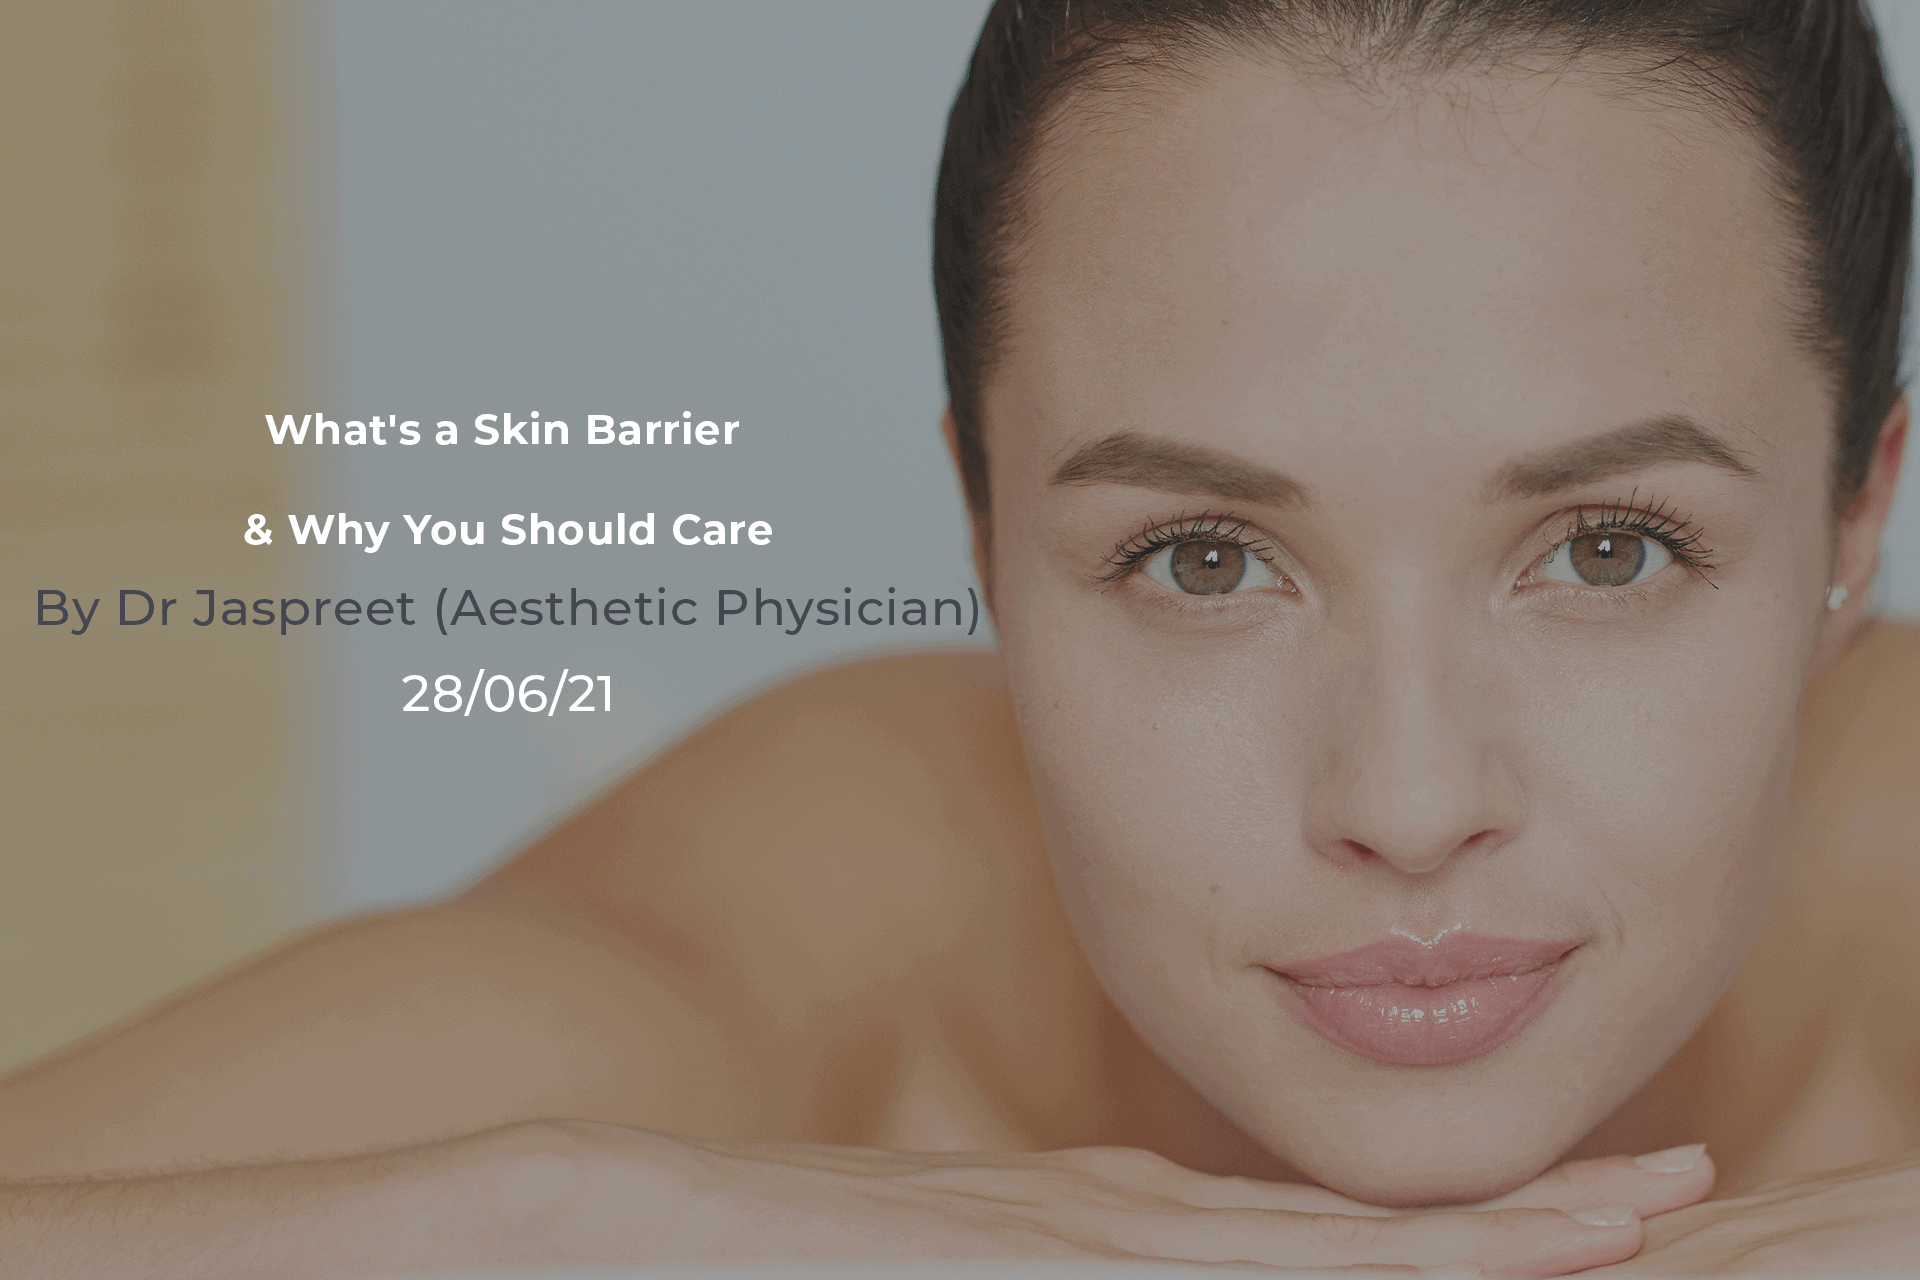 What is a Skin Barrier and why should you care